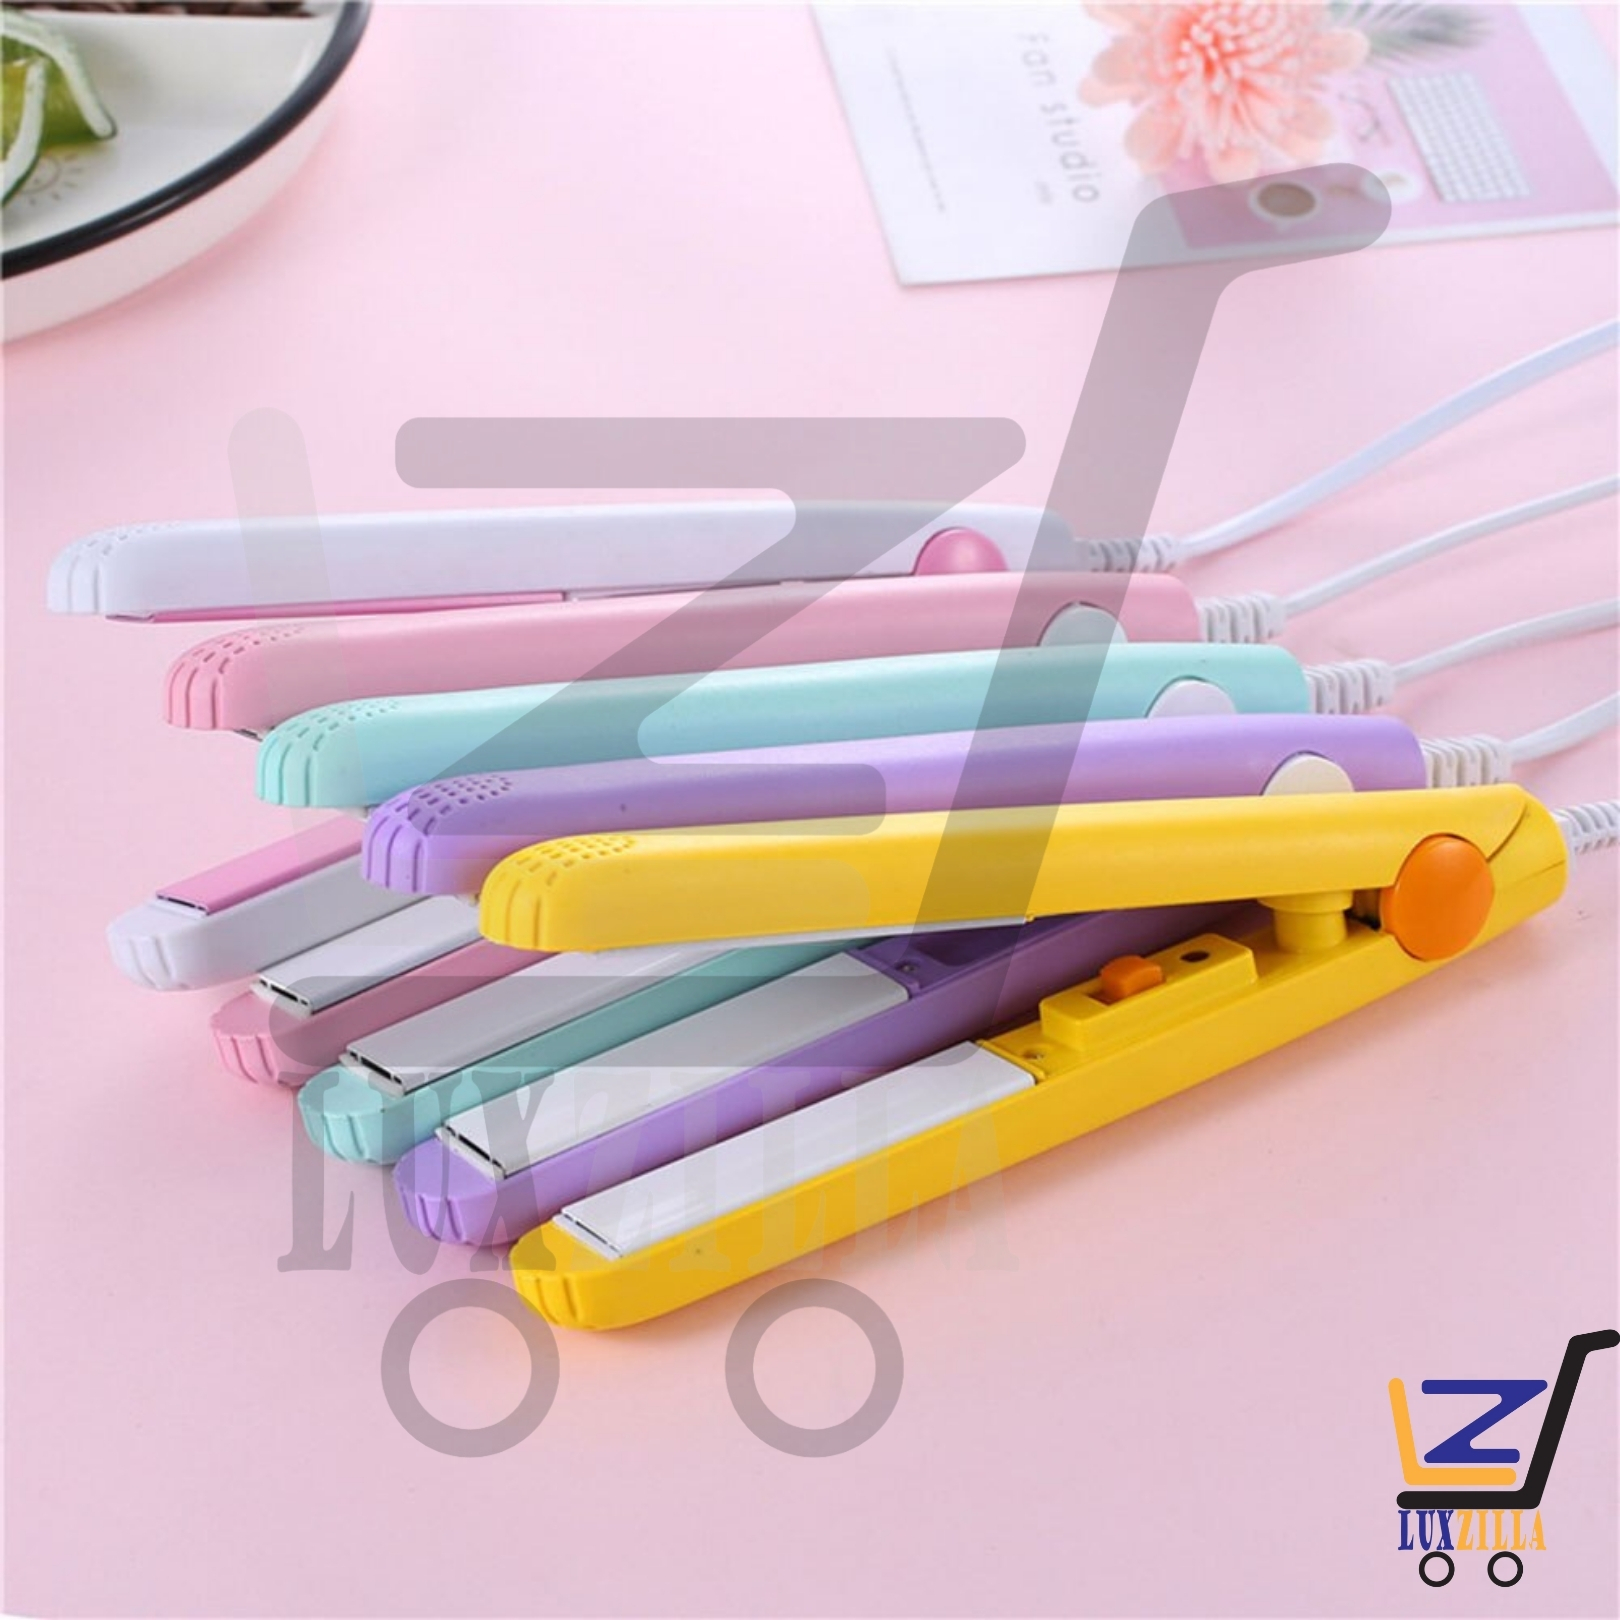 Hair Straightener, Travel Size Portable Hair Straightener, Hair Straightener Curler, Portable Mini Hair Flat Iron, Ceramic Tourmaline Iron Flat Straightening Styling Tools 220V with Elegant Design Easy to Carry during traveling Girls Choice